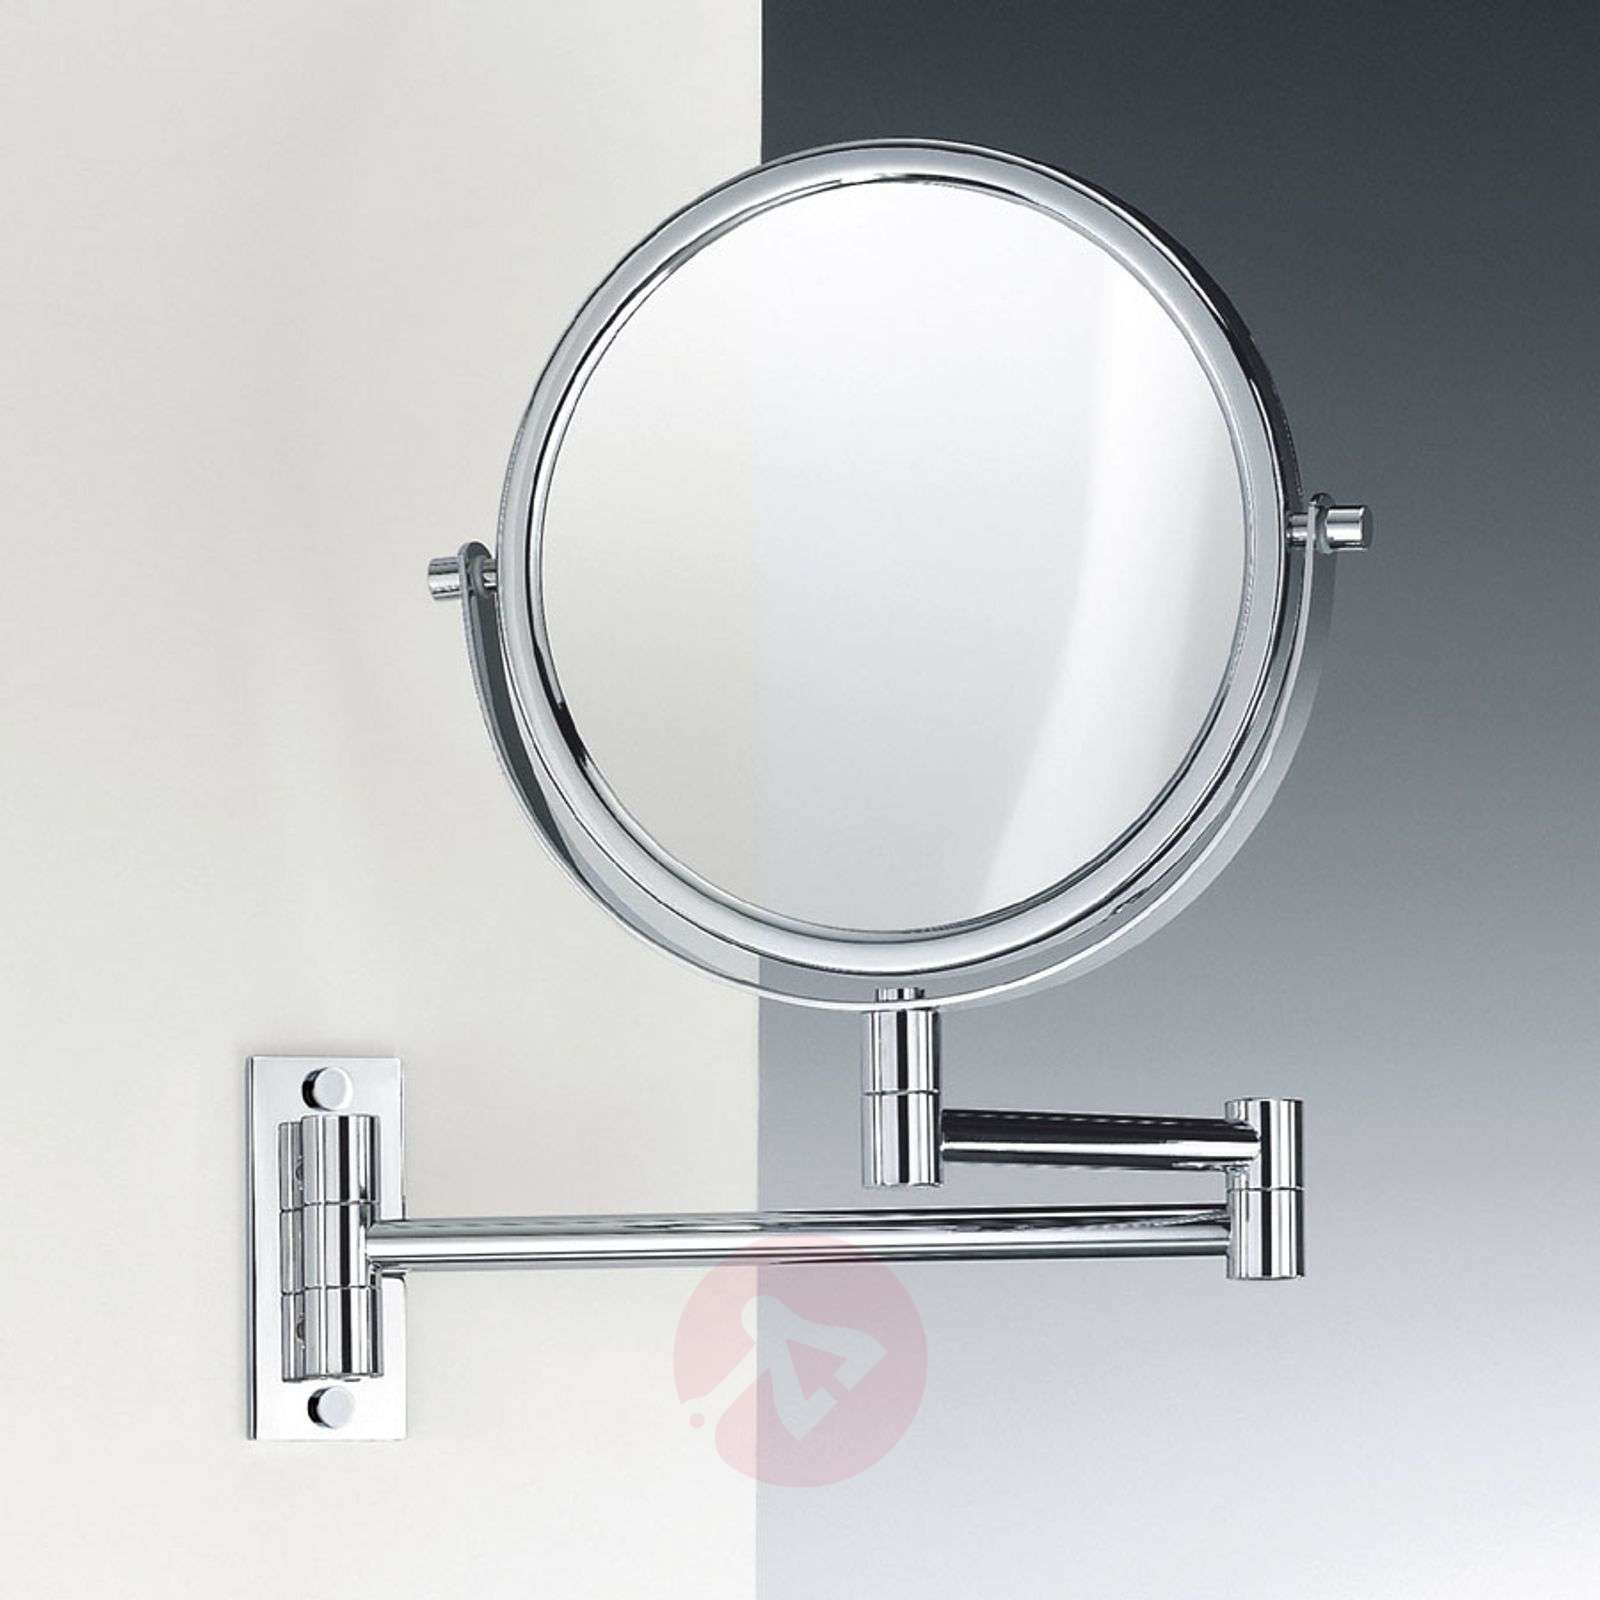 NEAT elegant cosmetic wall mirror with jointed arm-2504202-01